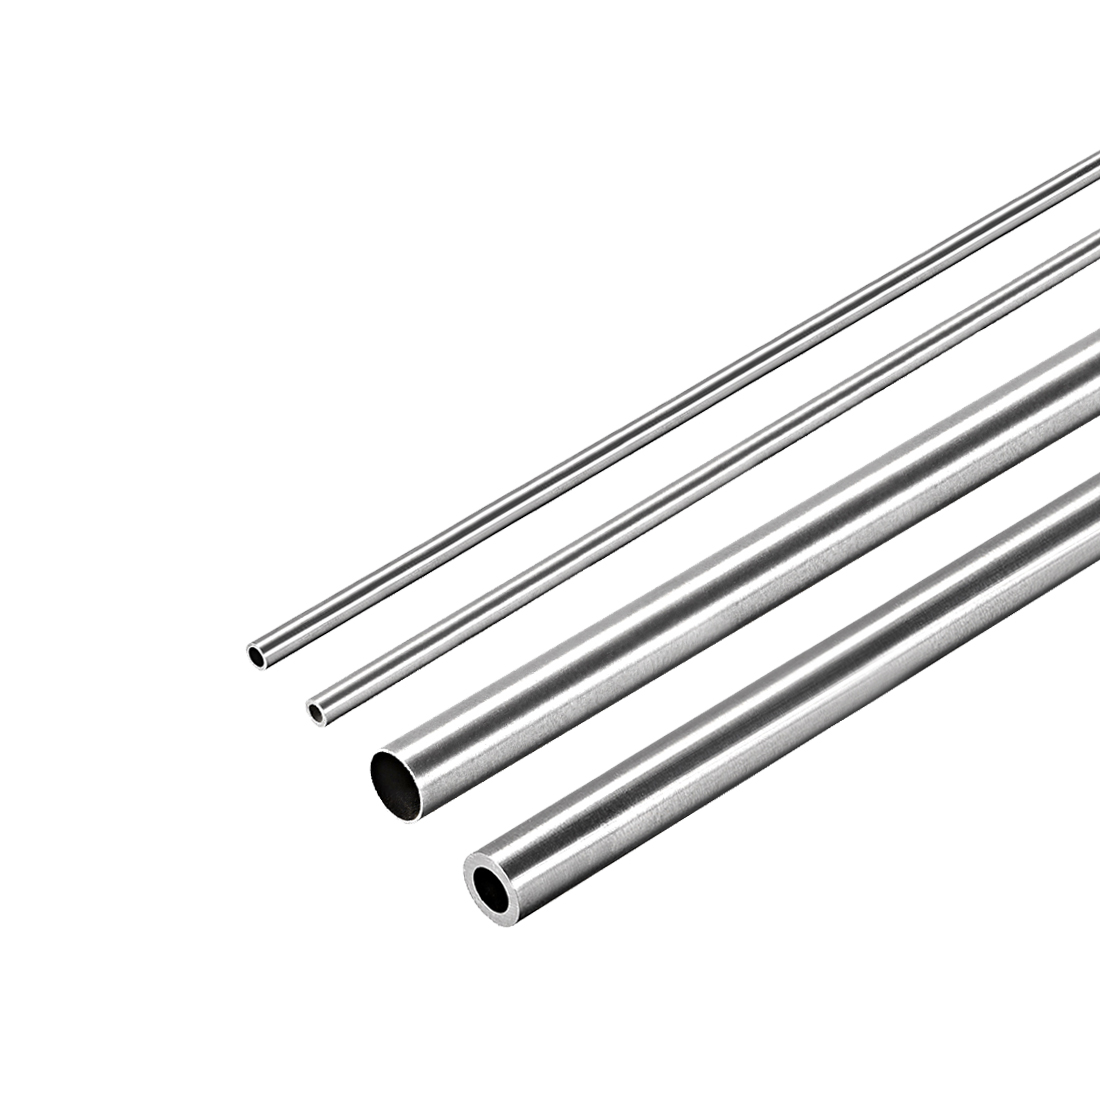 CynKen 4pcs OD 10mm x 5mm ID Stainless Pipe 304 Stainless Steel Capillary Tube Length 250mm